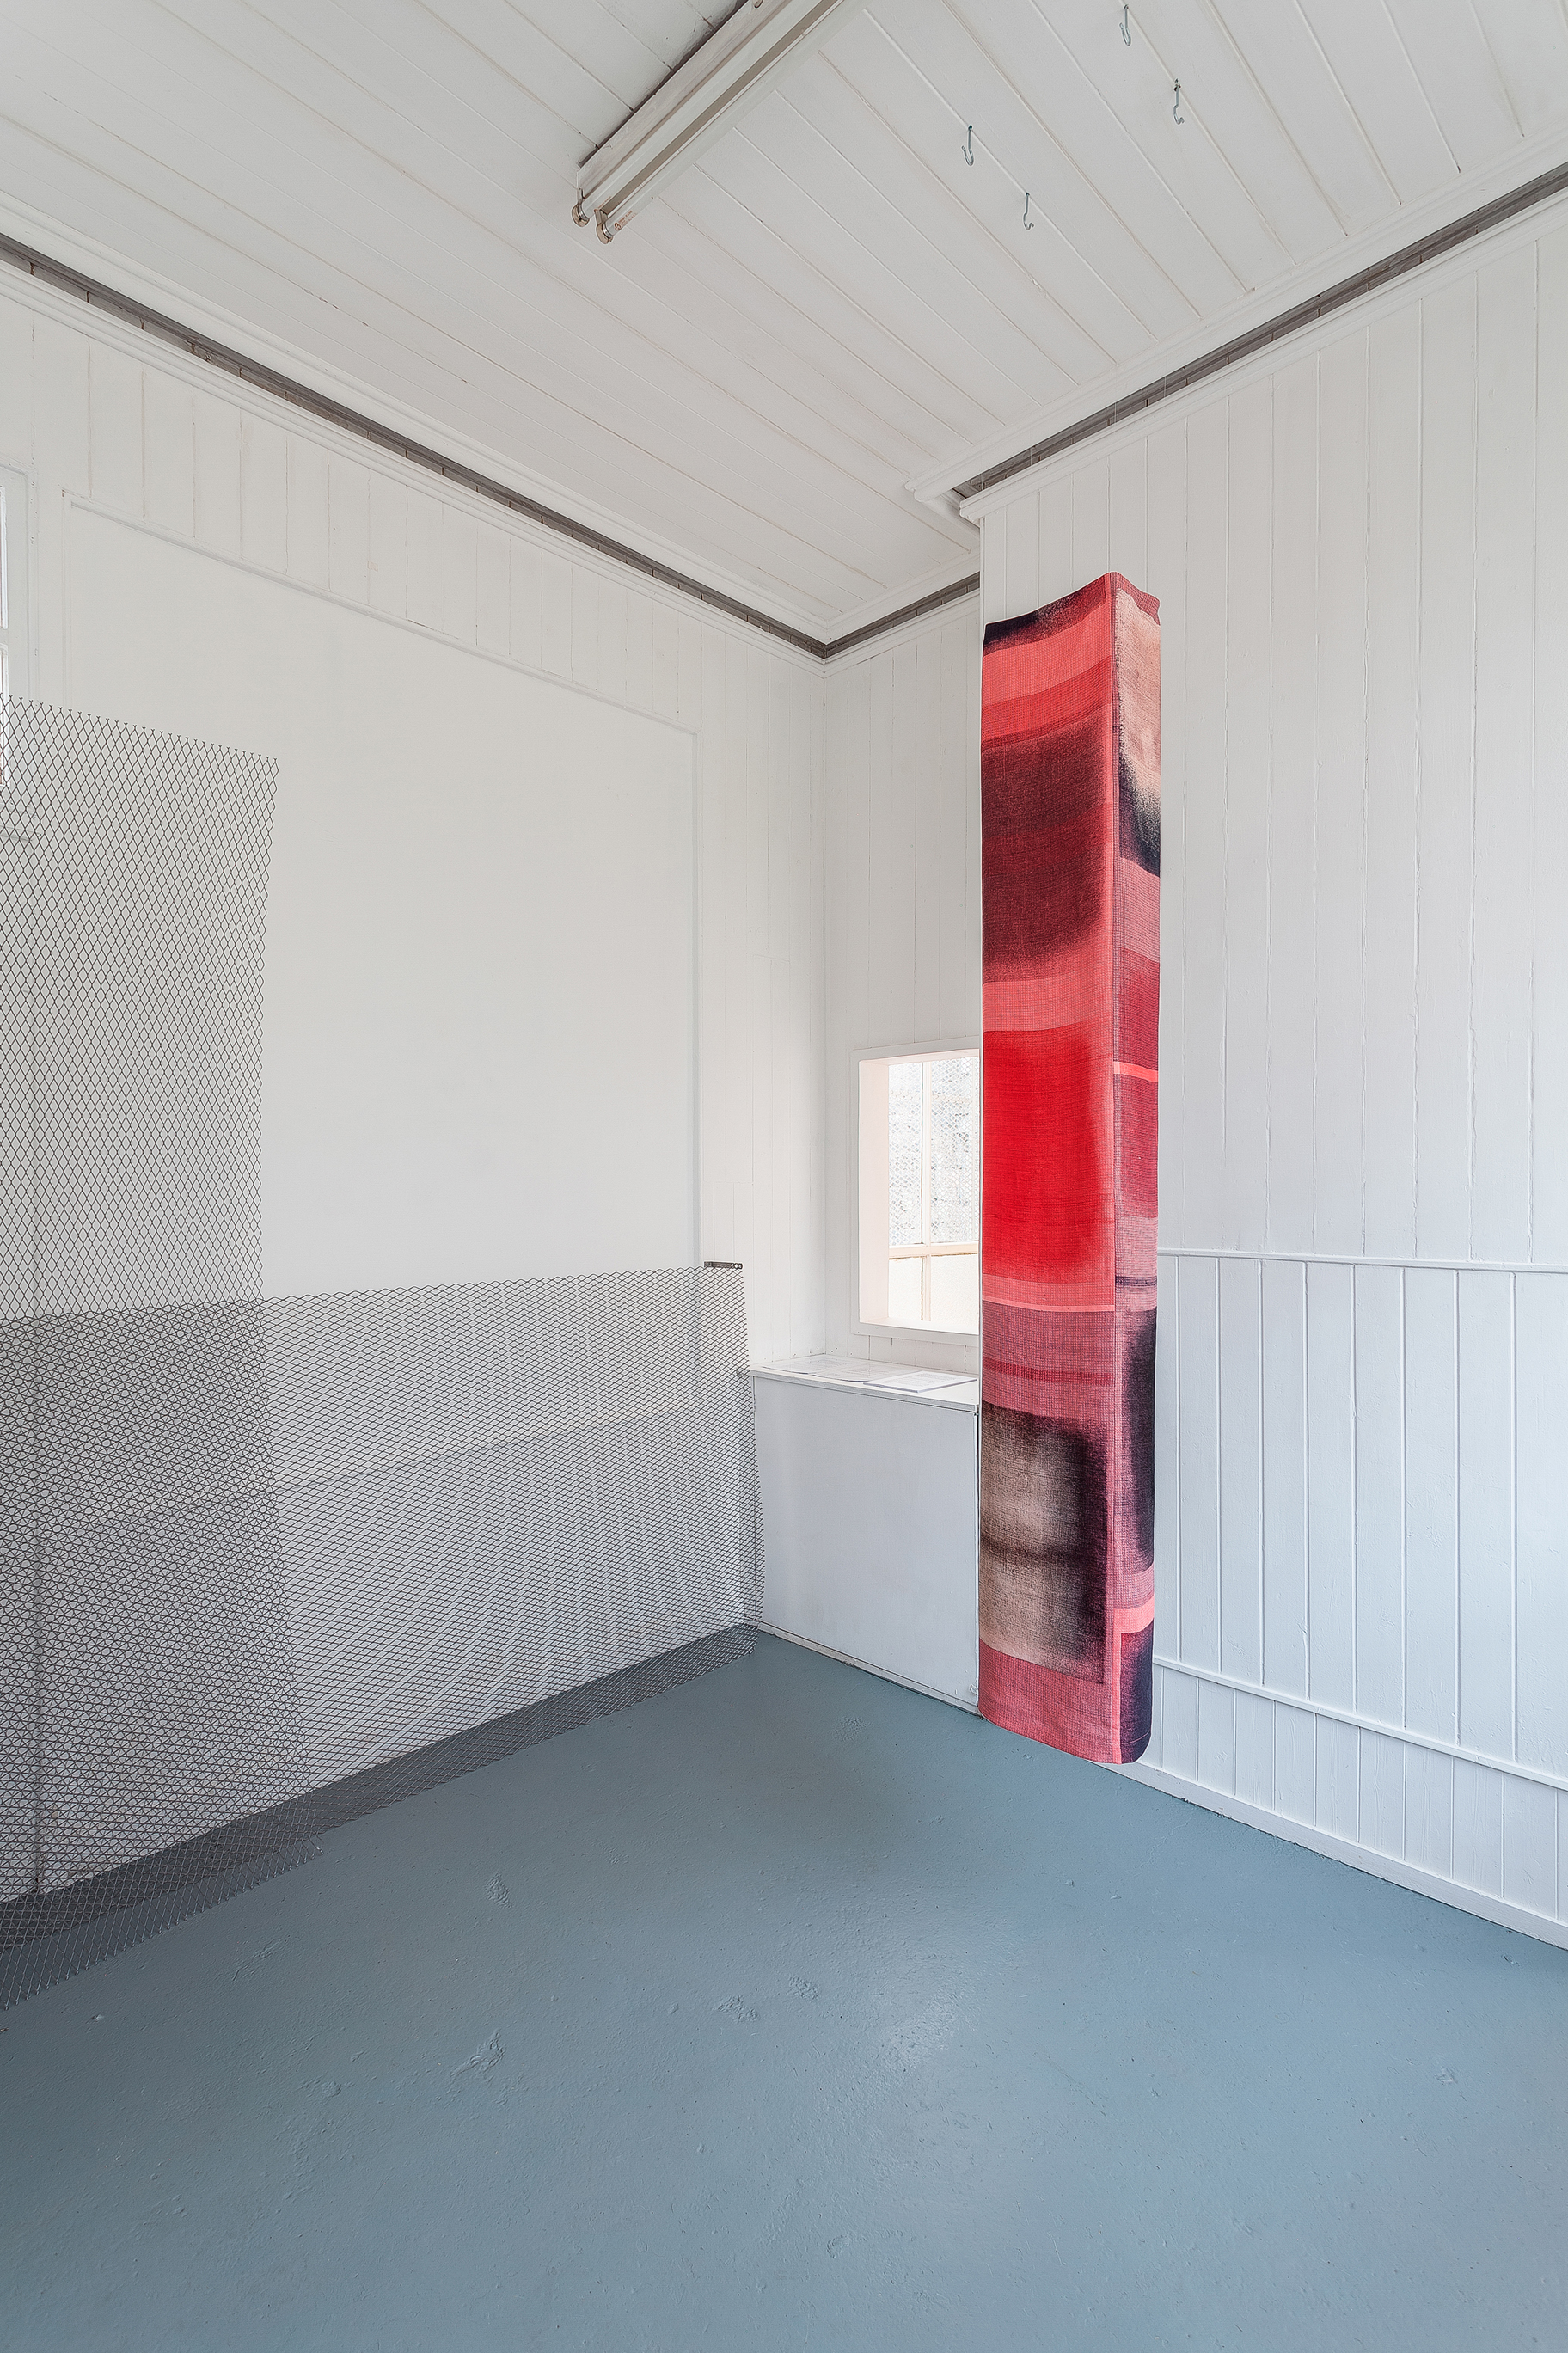 Untitled; part of 'Hum' exhibition, Queen's Park Railway Club, Glasgow with Claire Barcl